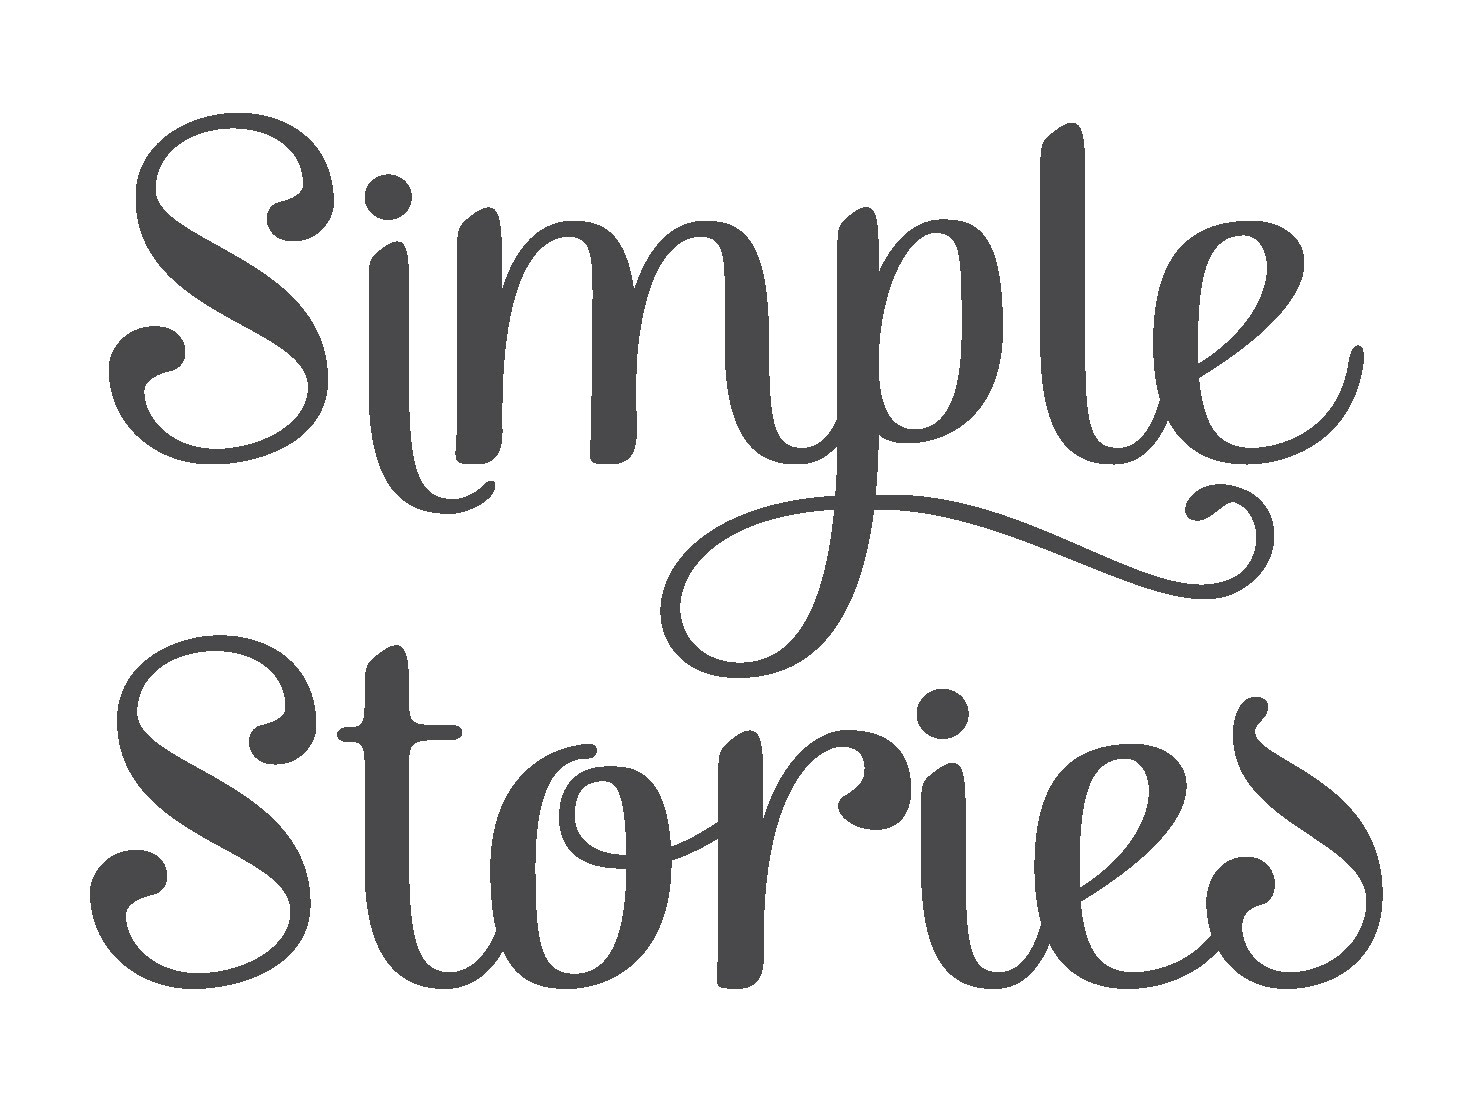 I'm so excited to have Simple Stories as sponsors of my cruise kits